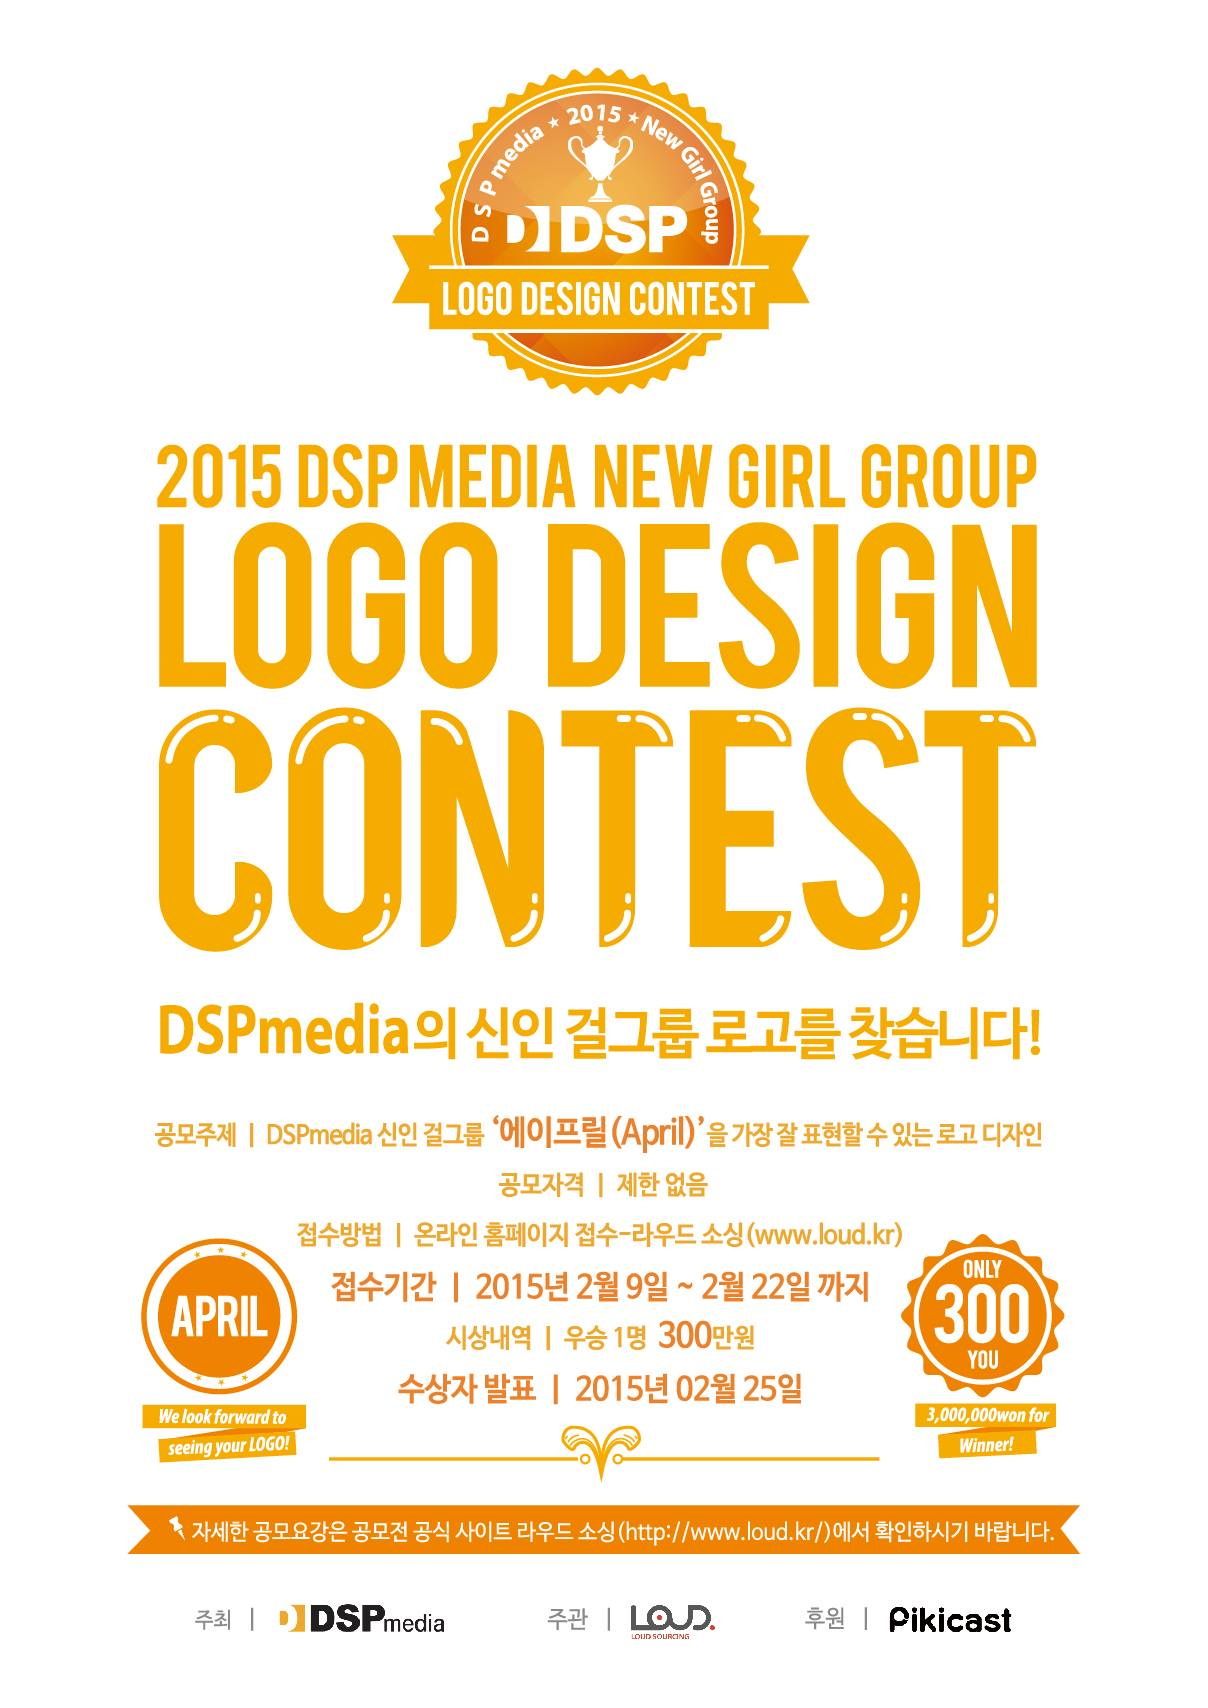 Dsp media opens logo design contest for new girl group april Logo design competitions